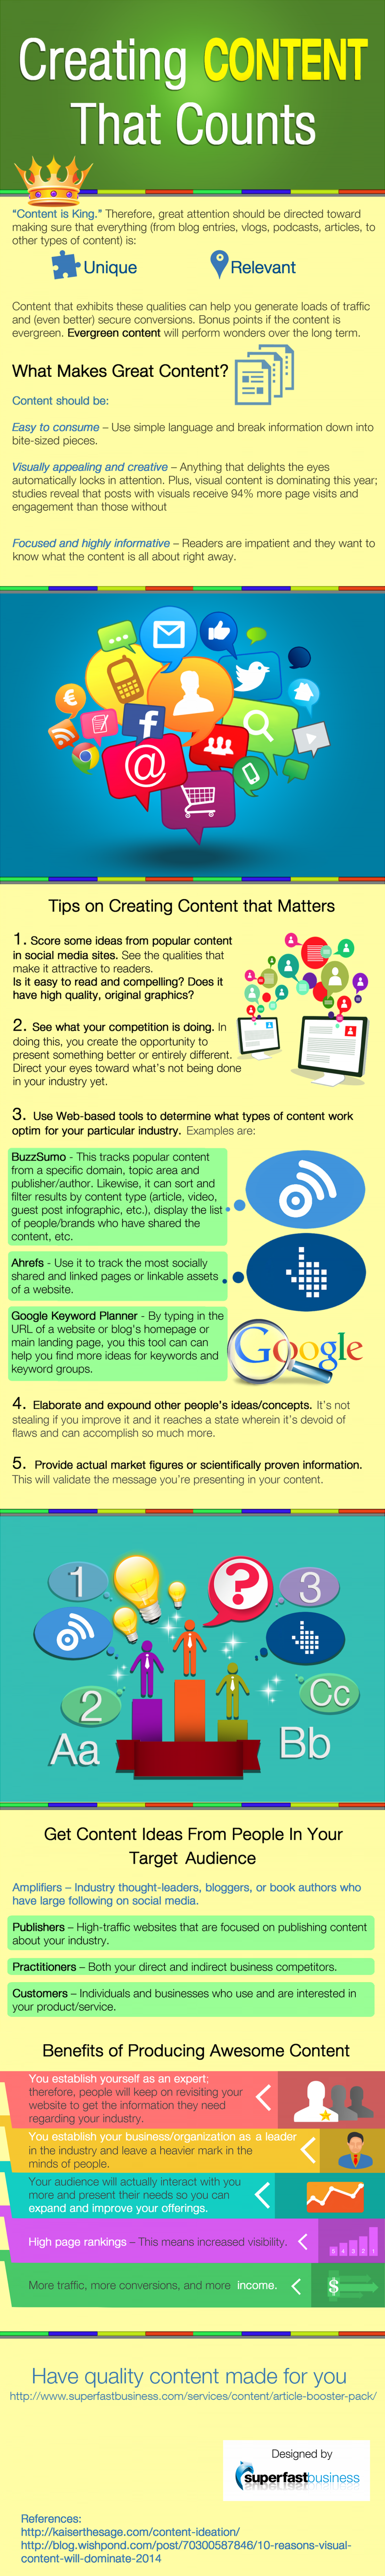 Creating Content That Counts Infographic